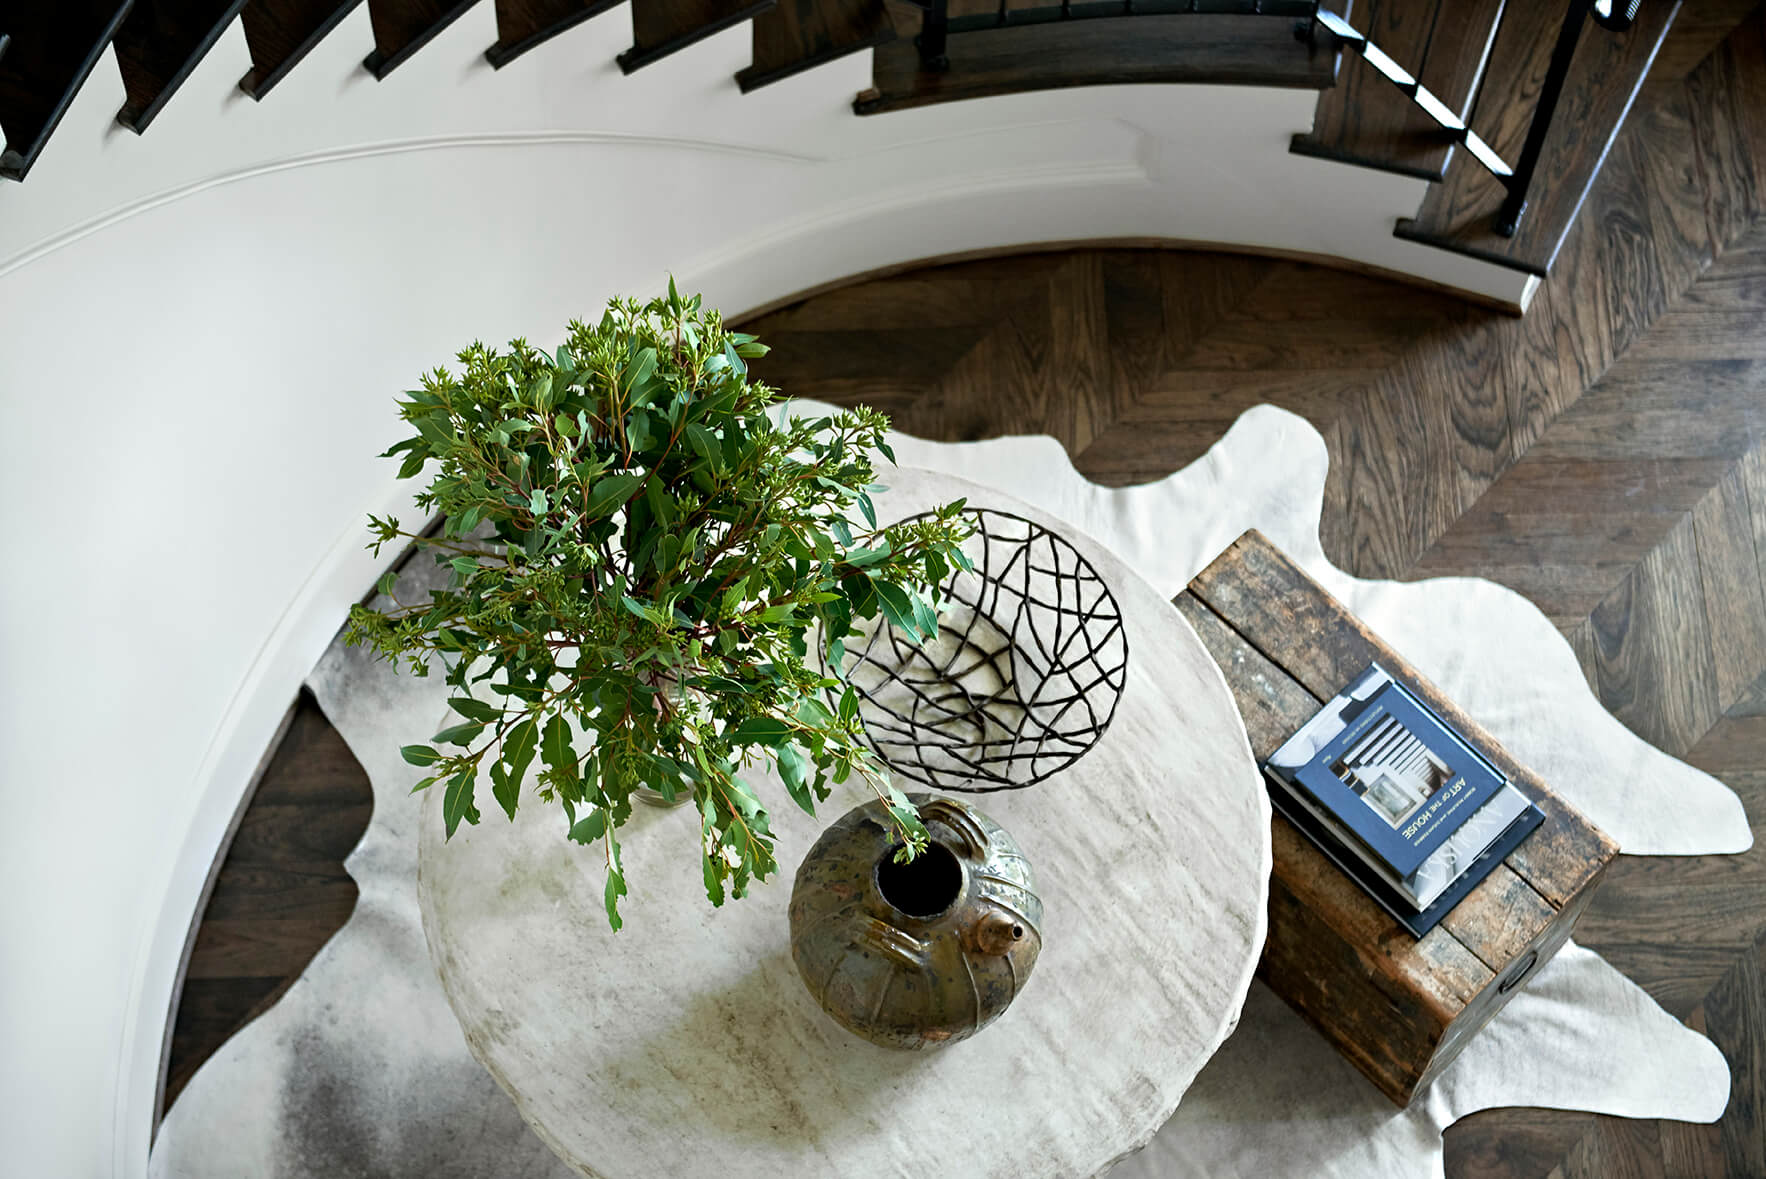 Bleached white round table next to an elegant staircase - Rustic Contemporary Bureau Interior Design Nashville TN